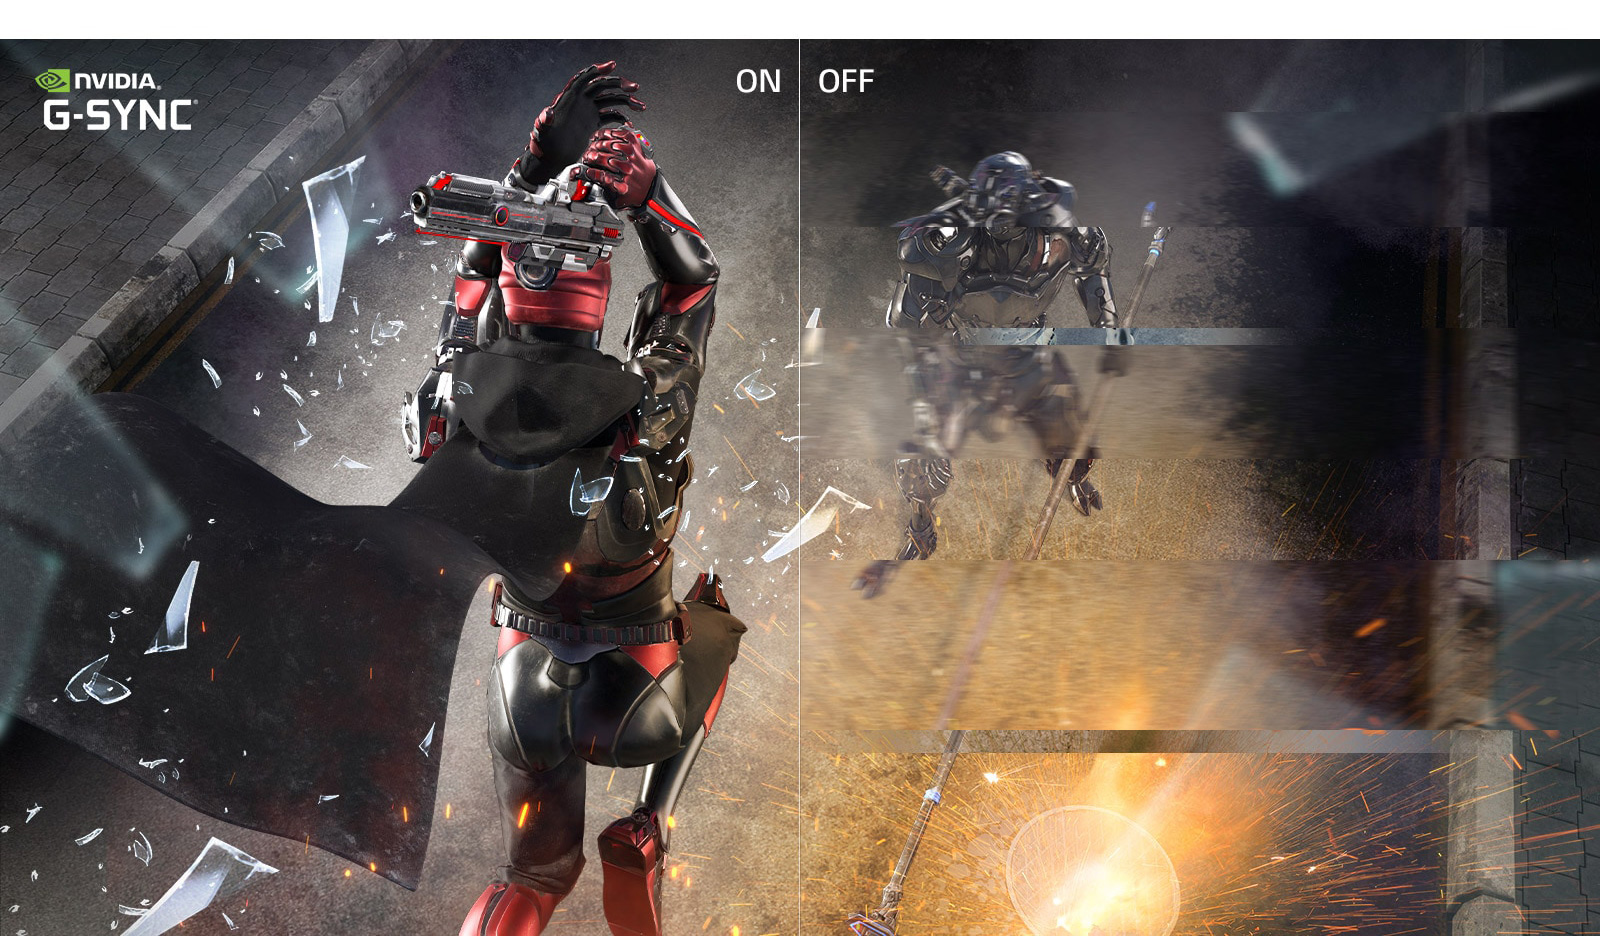 a image splited into two, showing difference effect between g-sync on and off